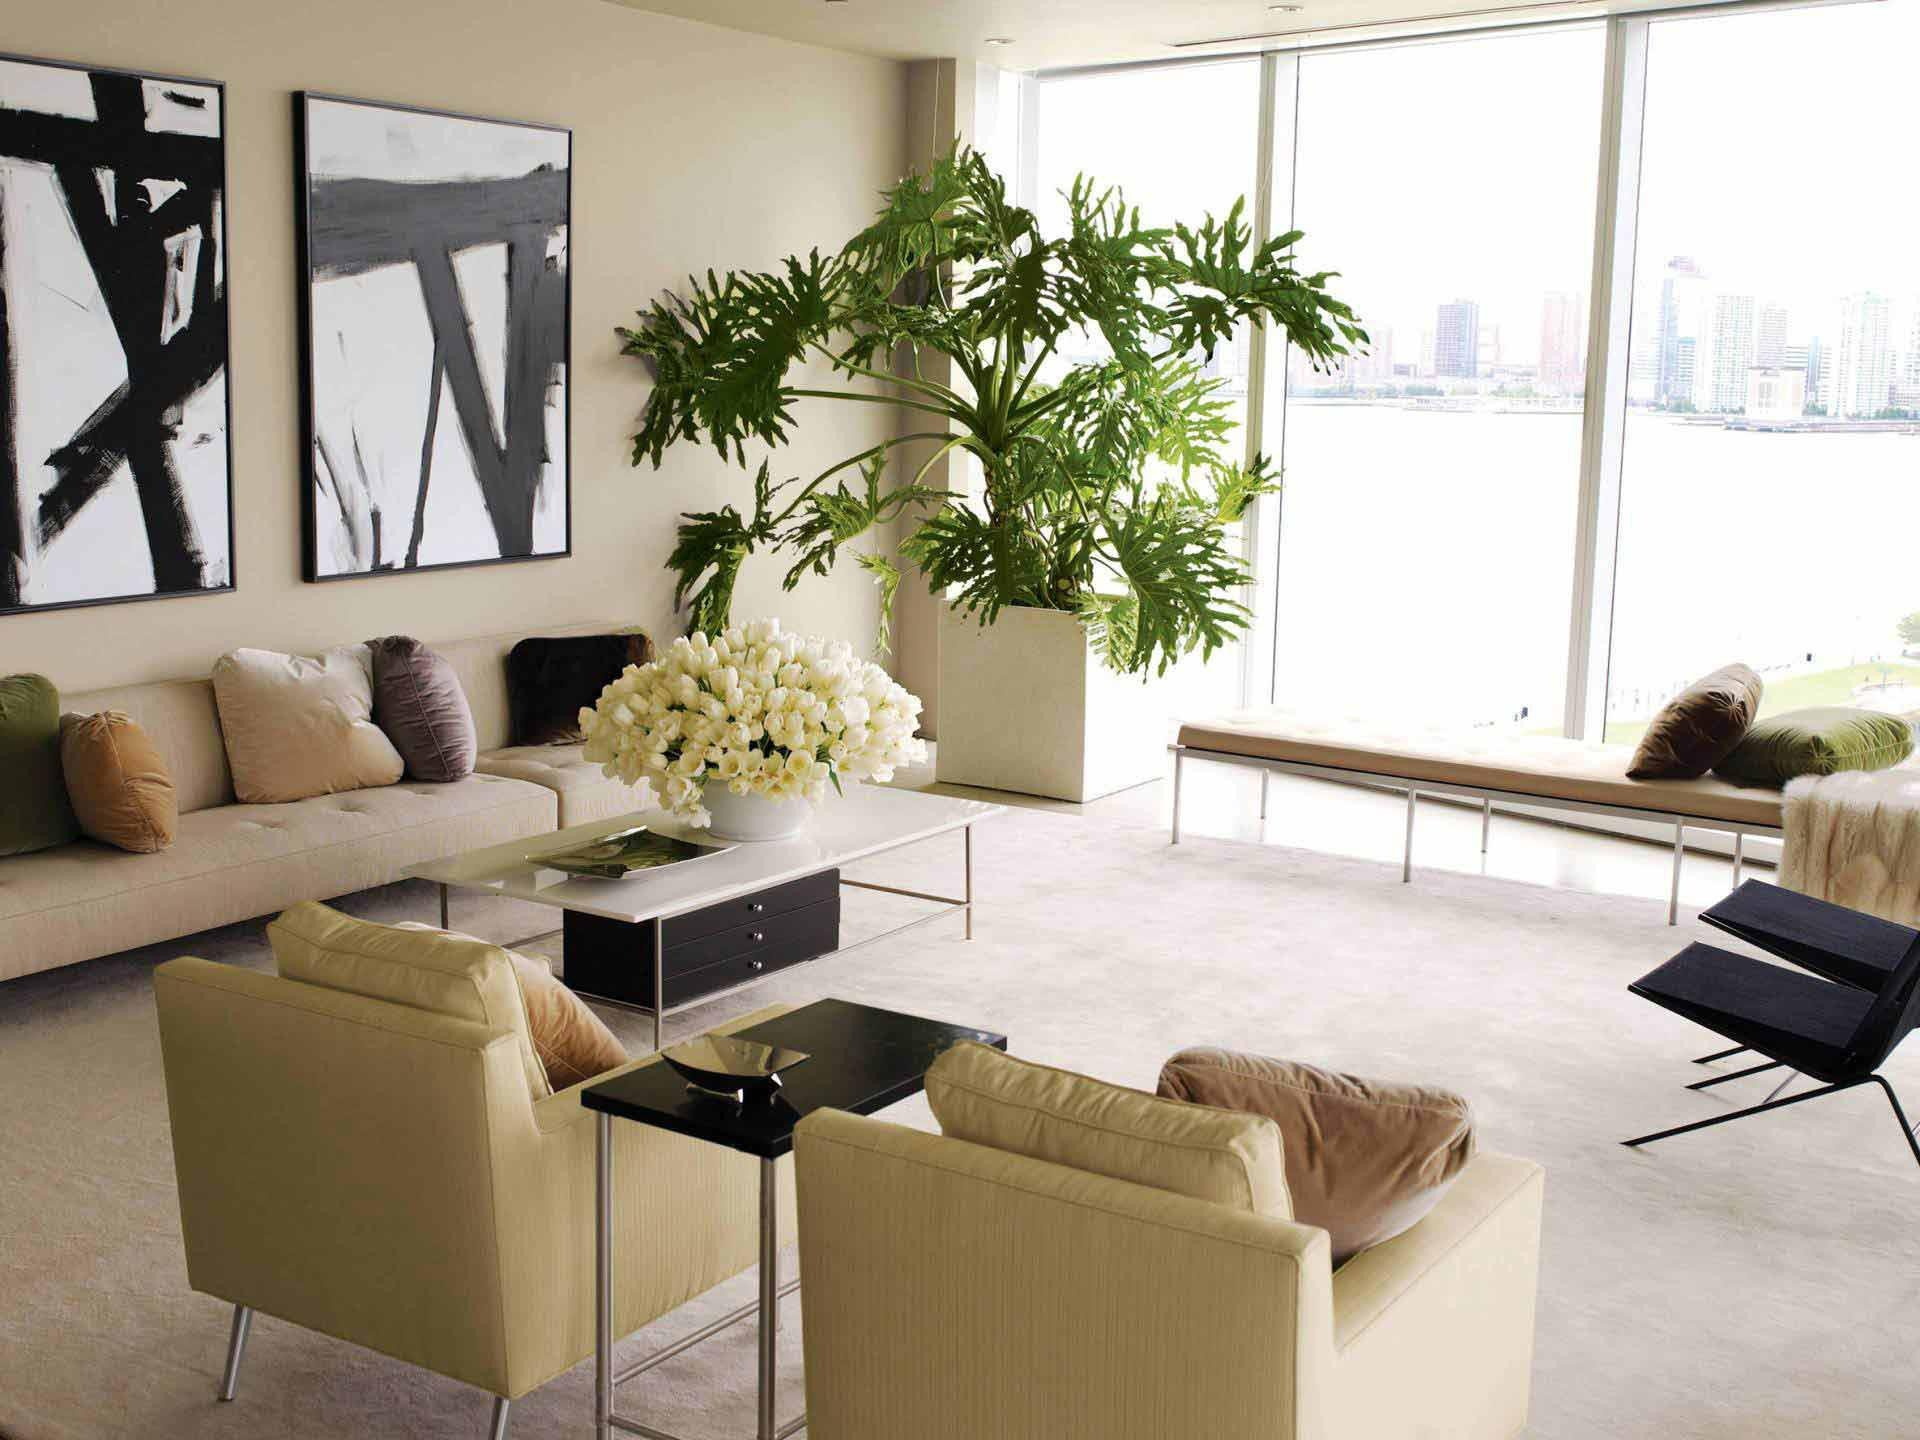 Modern Living Room Decorating Ideas Plant Best Of Decorating Our Homes with Plants Interior Design Explained